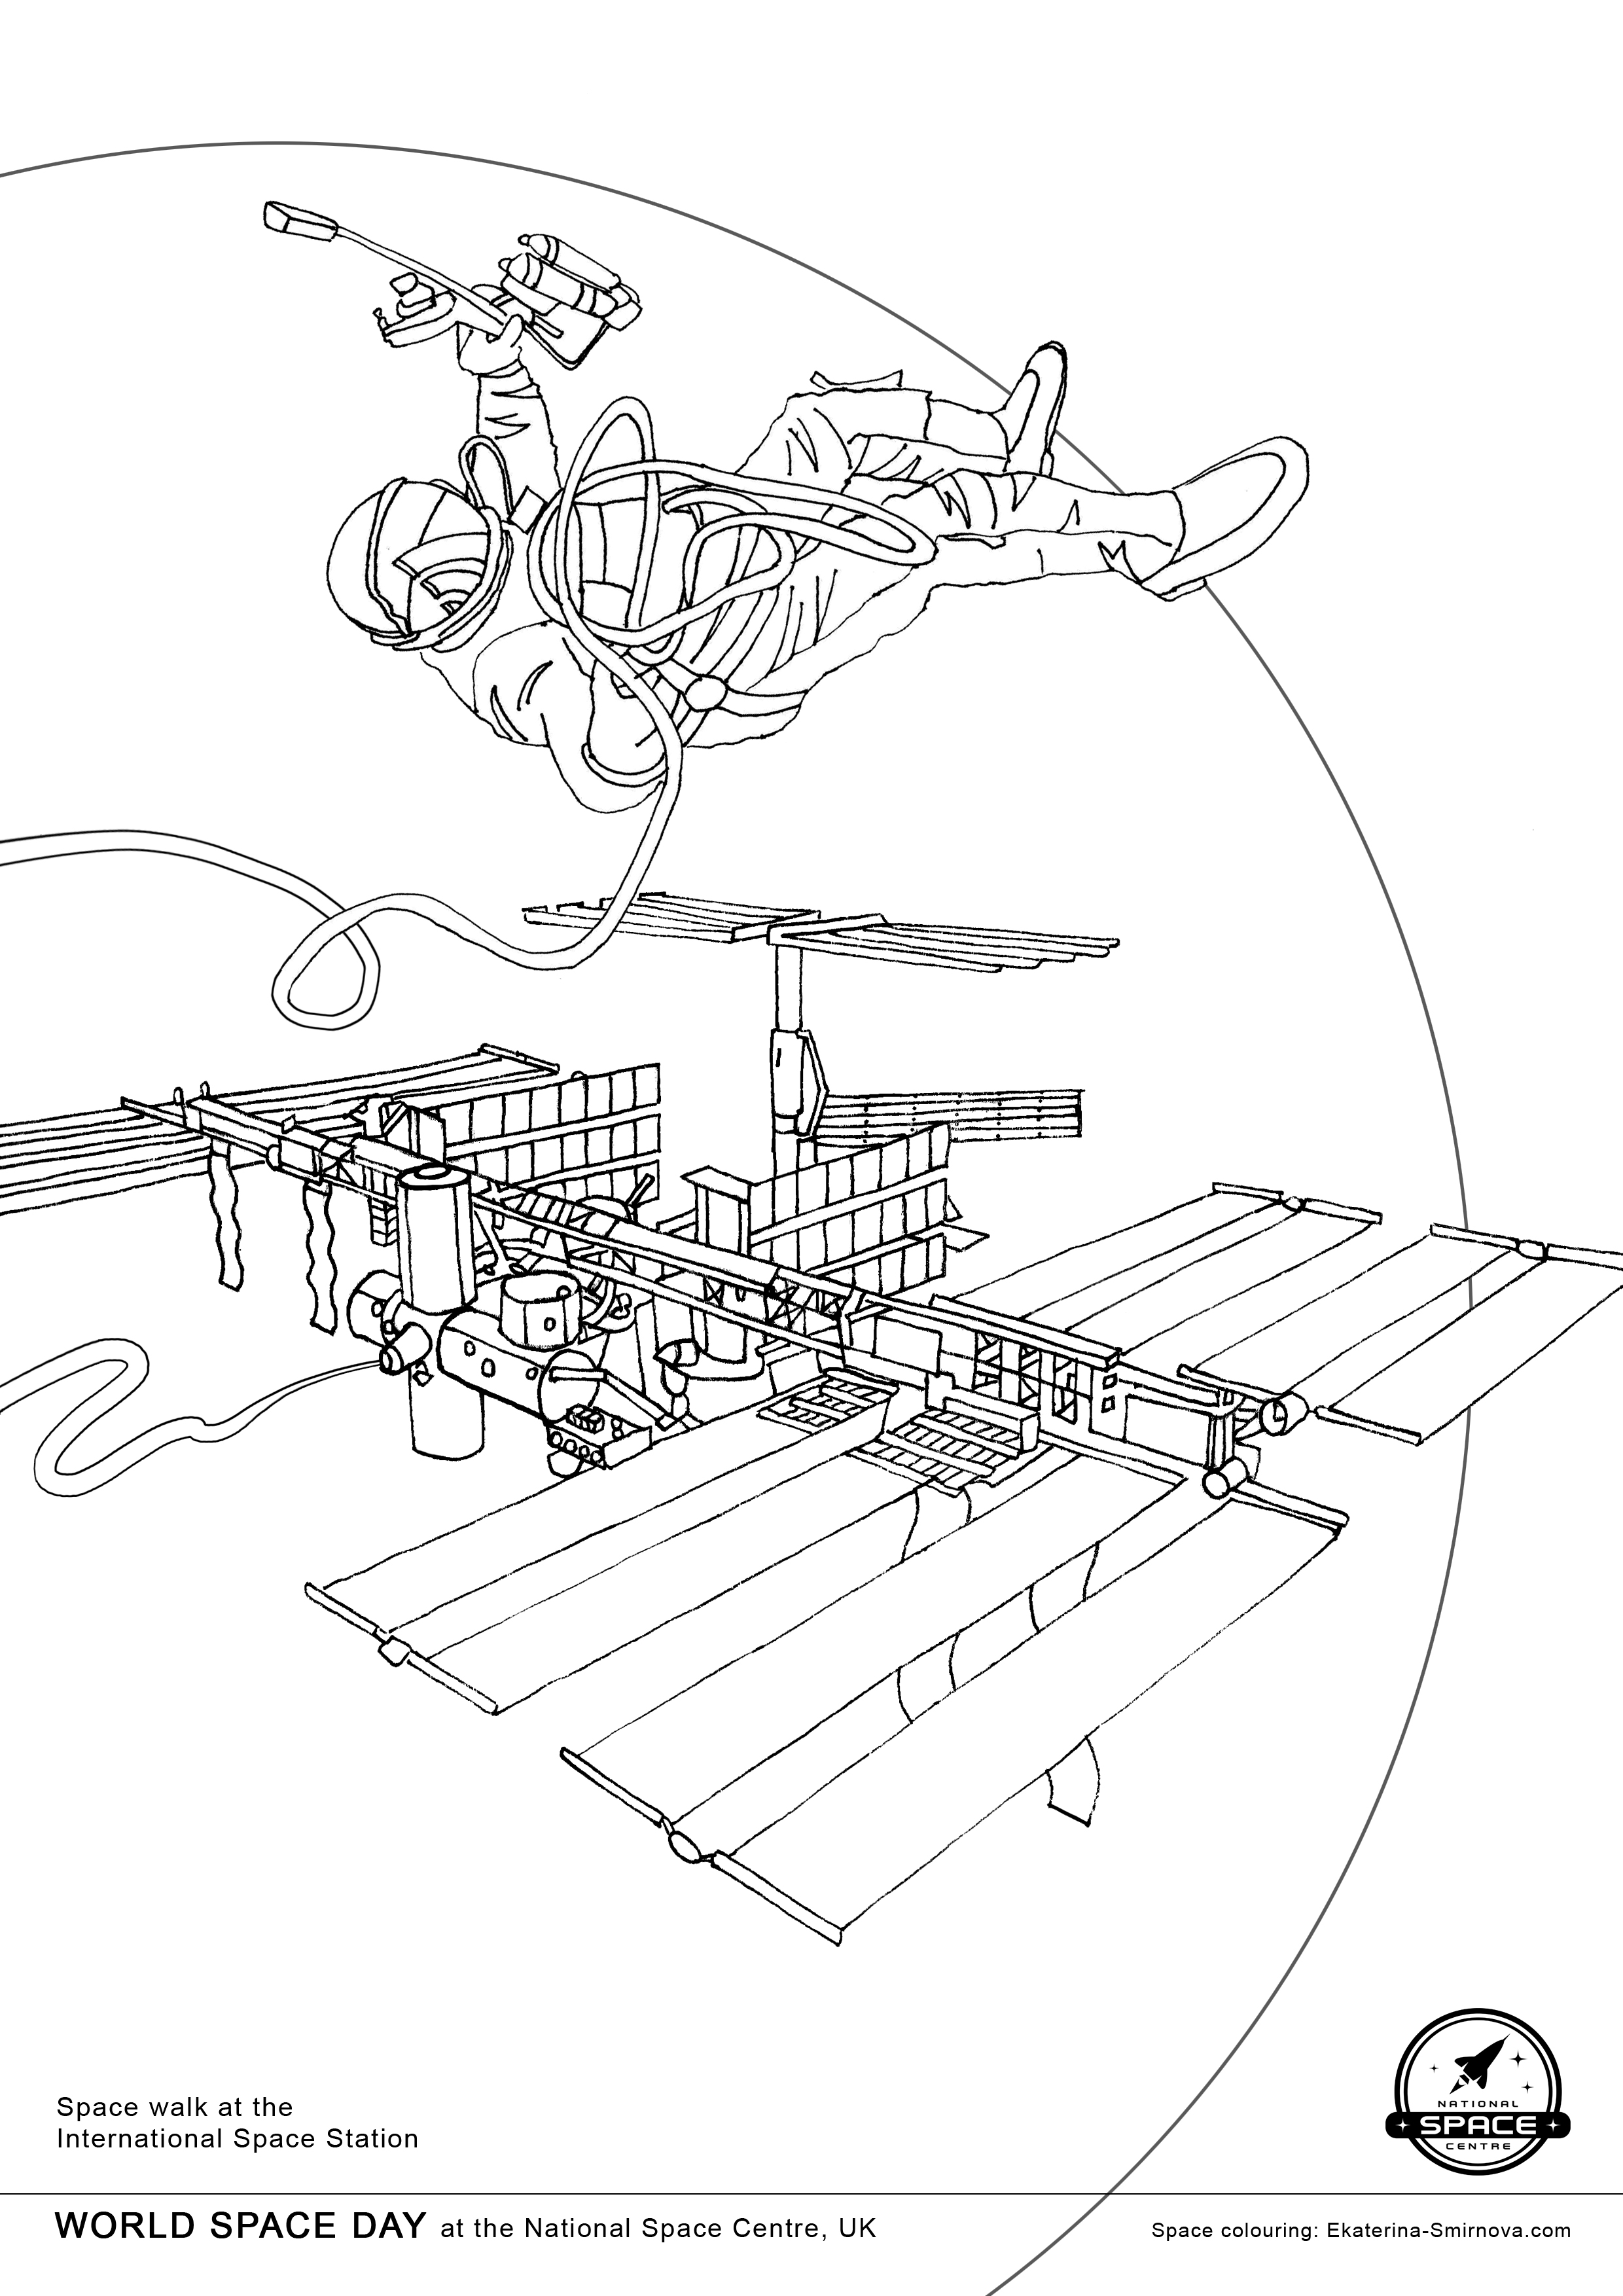 Coloring Book For Space Missions